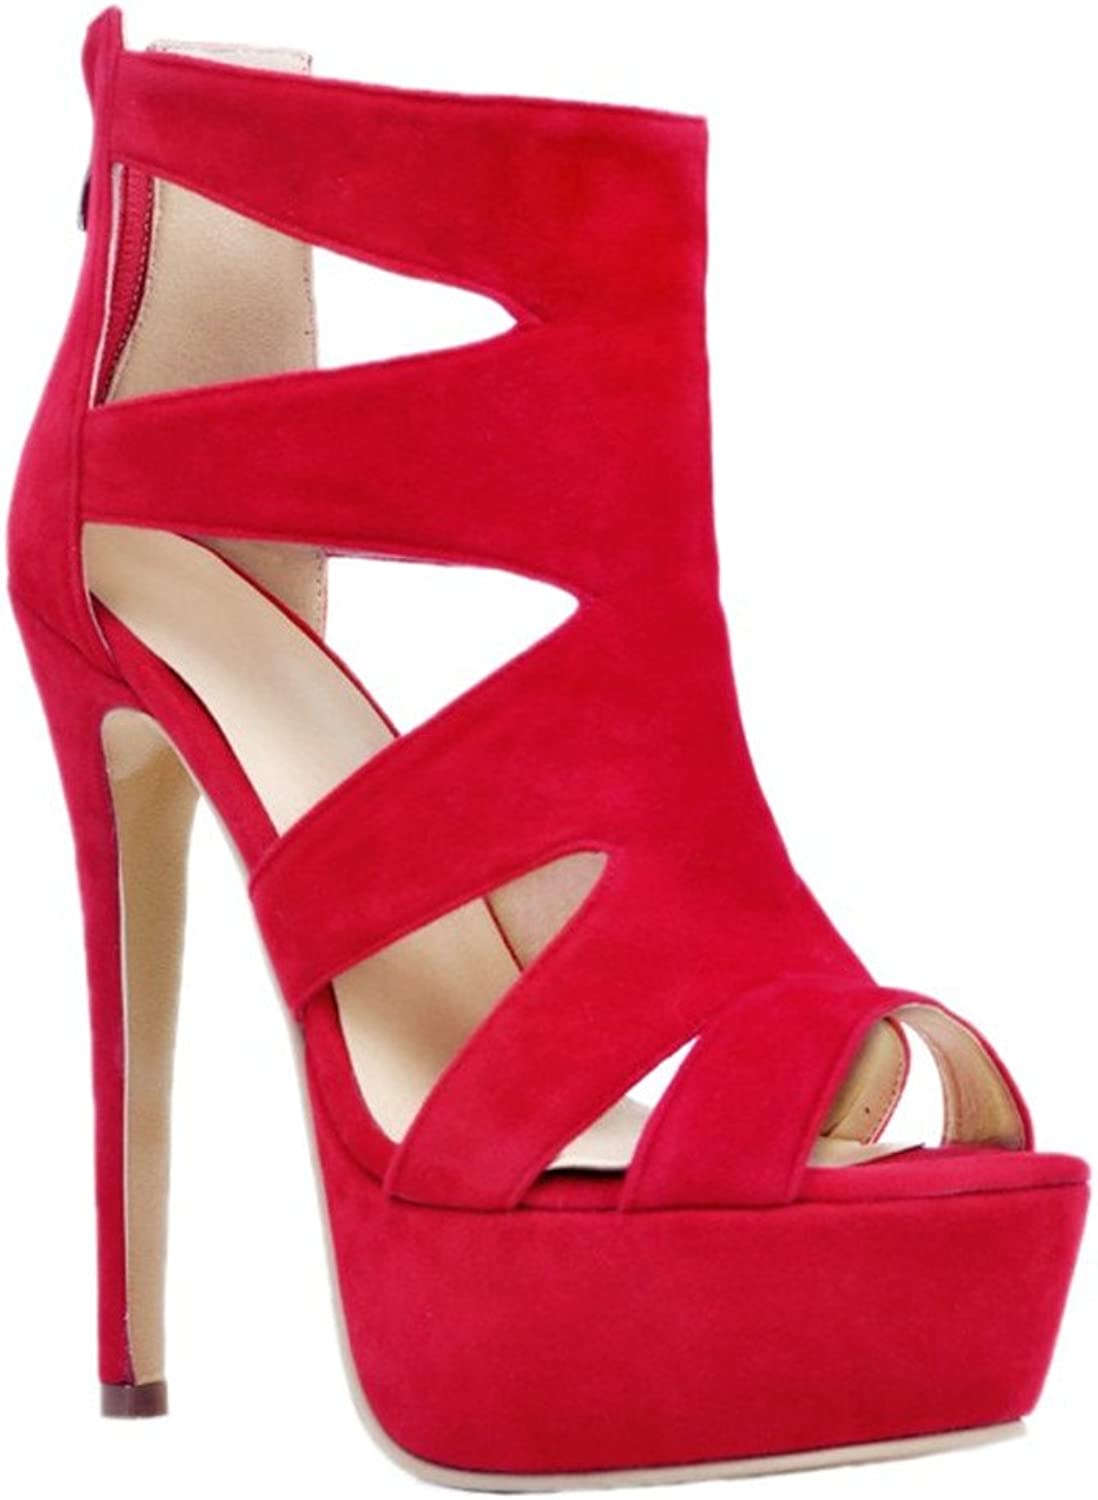 CASSOCK Womens Cut-Out High Heel Party Office Peep Toe Sandals Fashion shoes